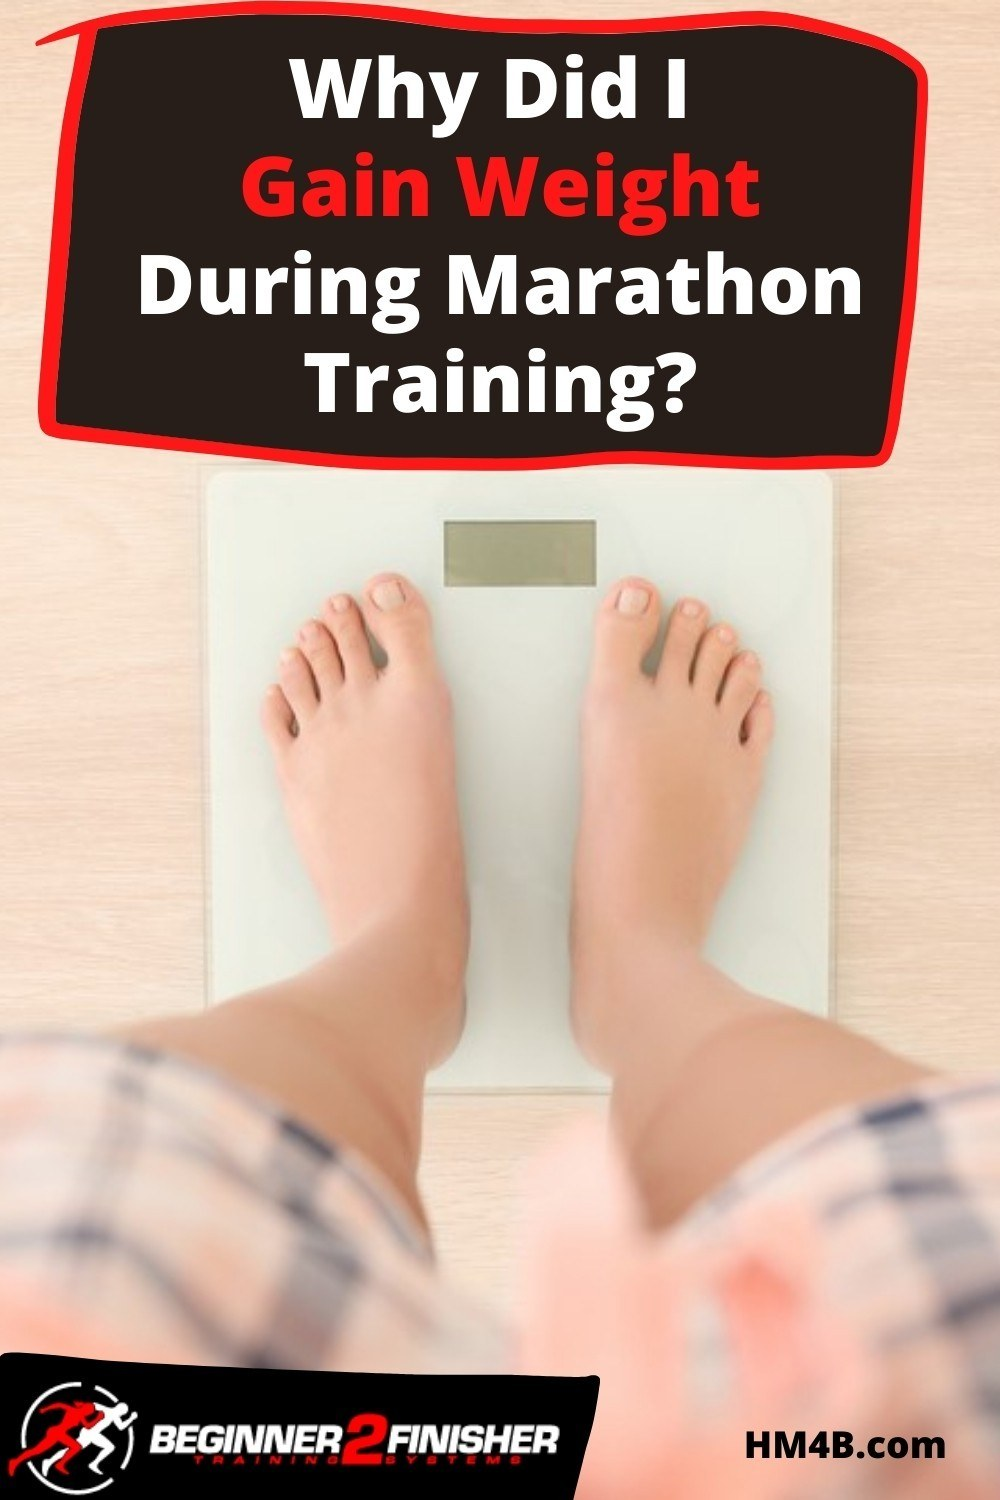 Why Did I Gain Weight During My Marathon Training?